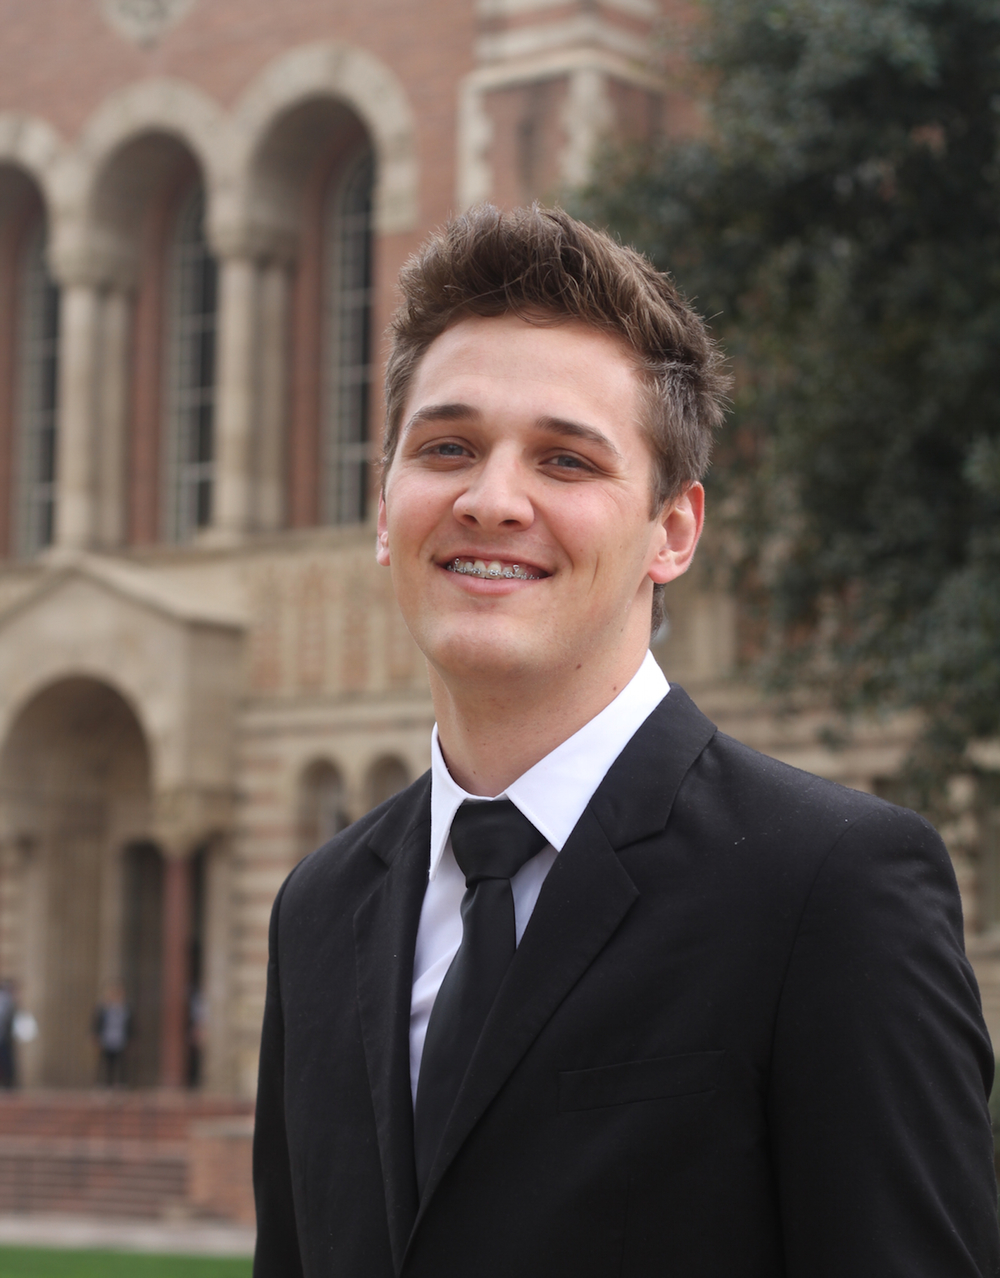 Tony Calavitta - President   English, B.S. | 2016 Pi Class Email : president@uclaphide.org